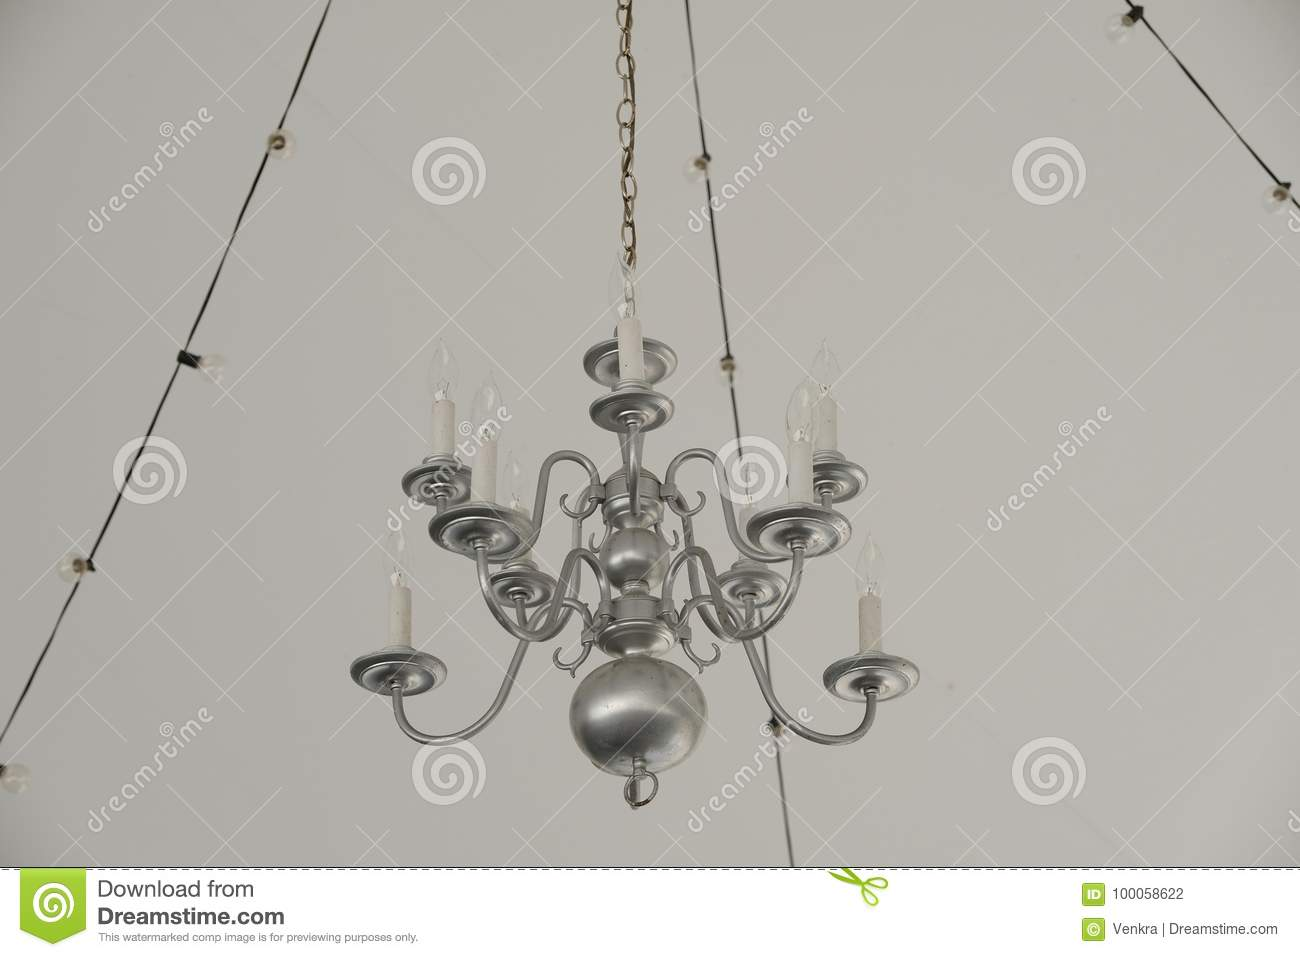 Chandelier stock photo. Image of decor, chandelier, electricity ...